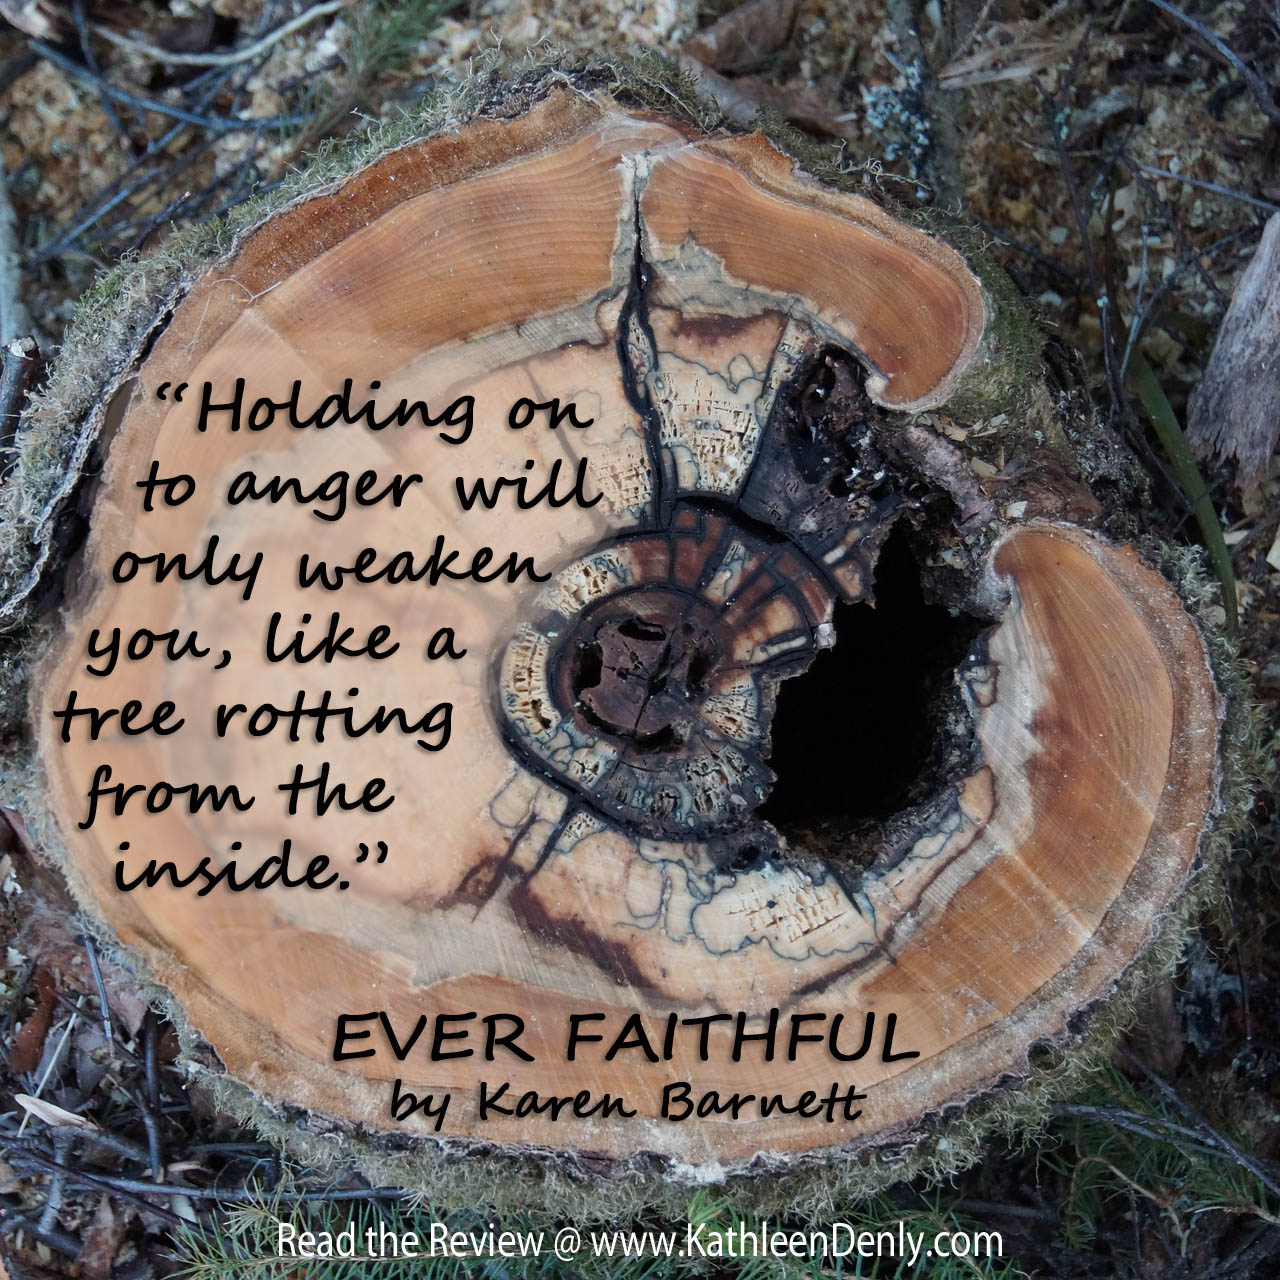 Book Quote - Ever Faithful - Anger Rotting Tree